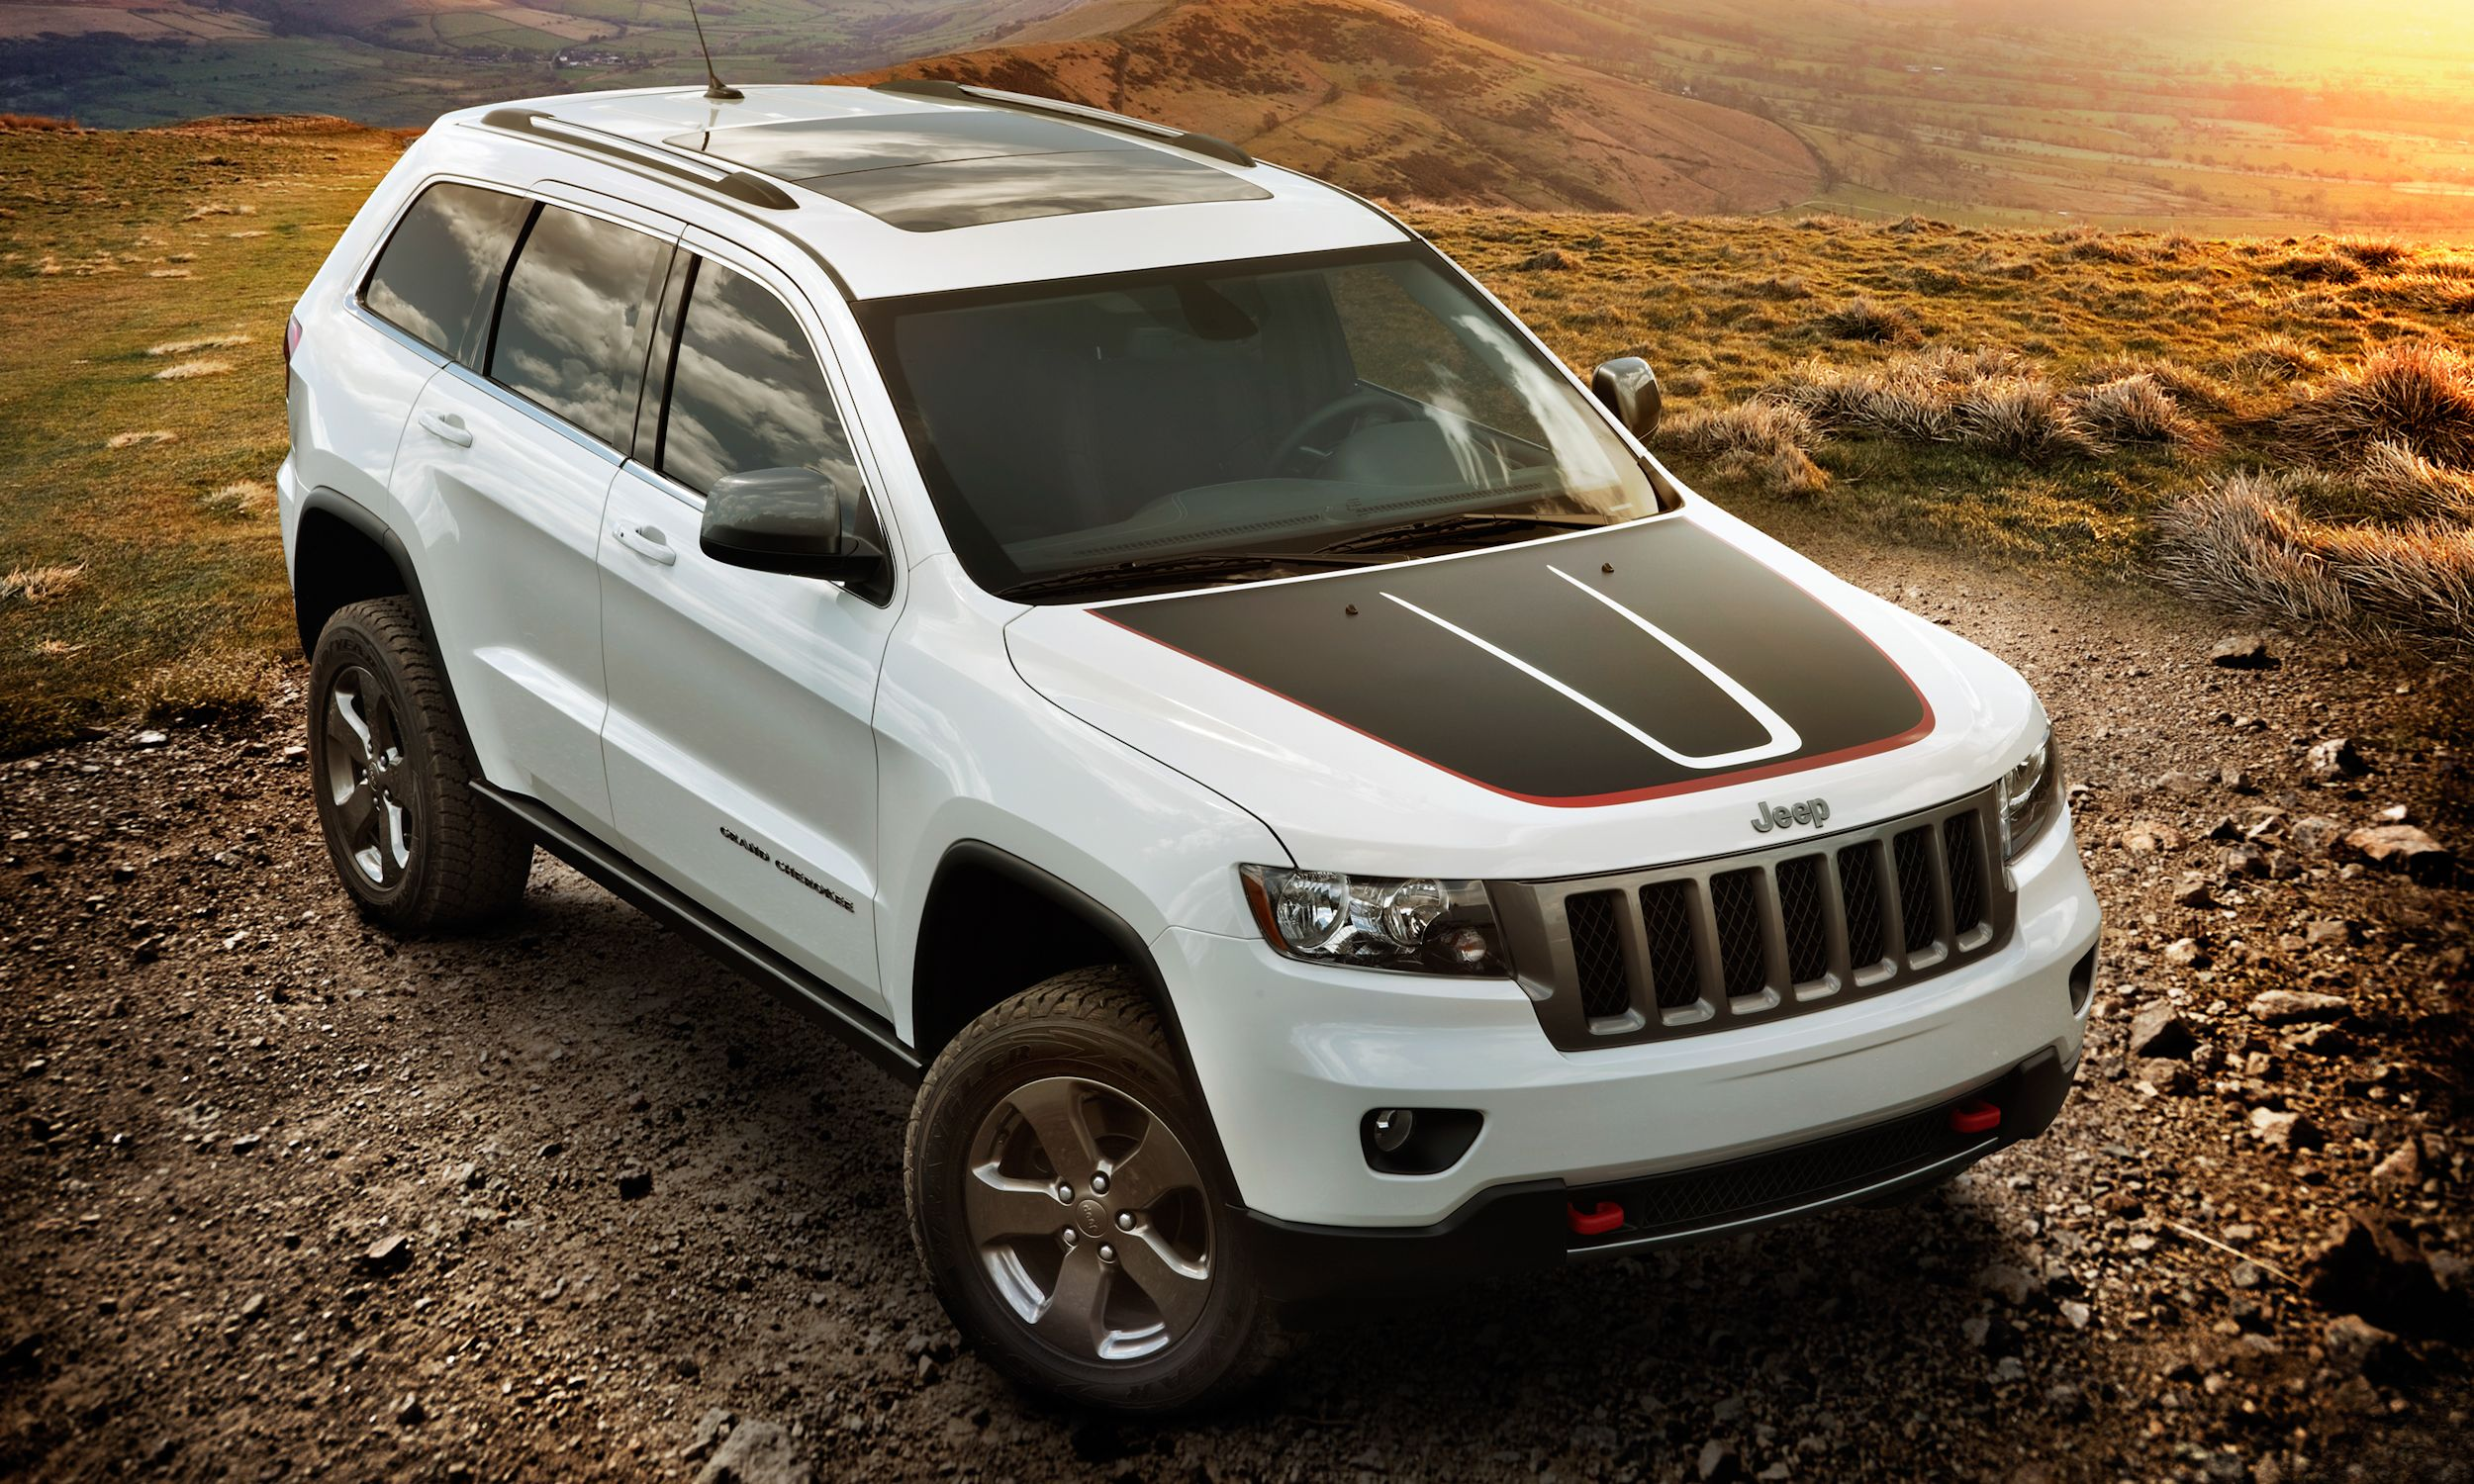 Consumer Reports Top Rated Us Cars Jeep Grand Cherokee Grand Cherokee Trailhawk 2013 Jeep Grand Cherokee